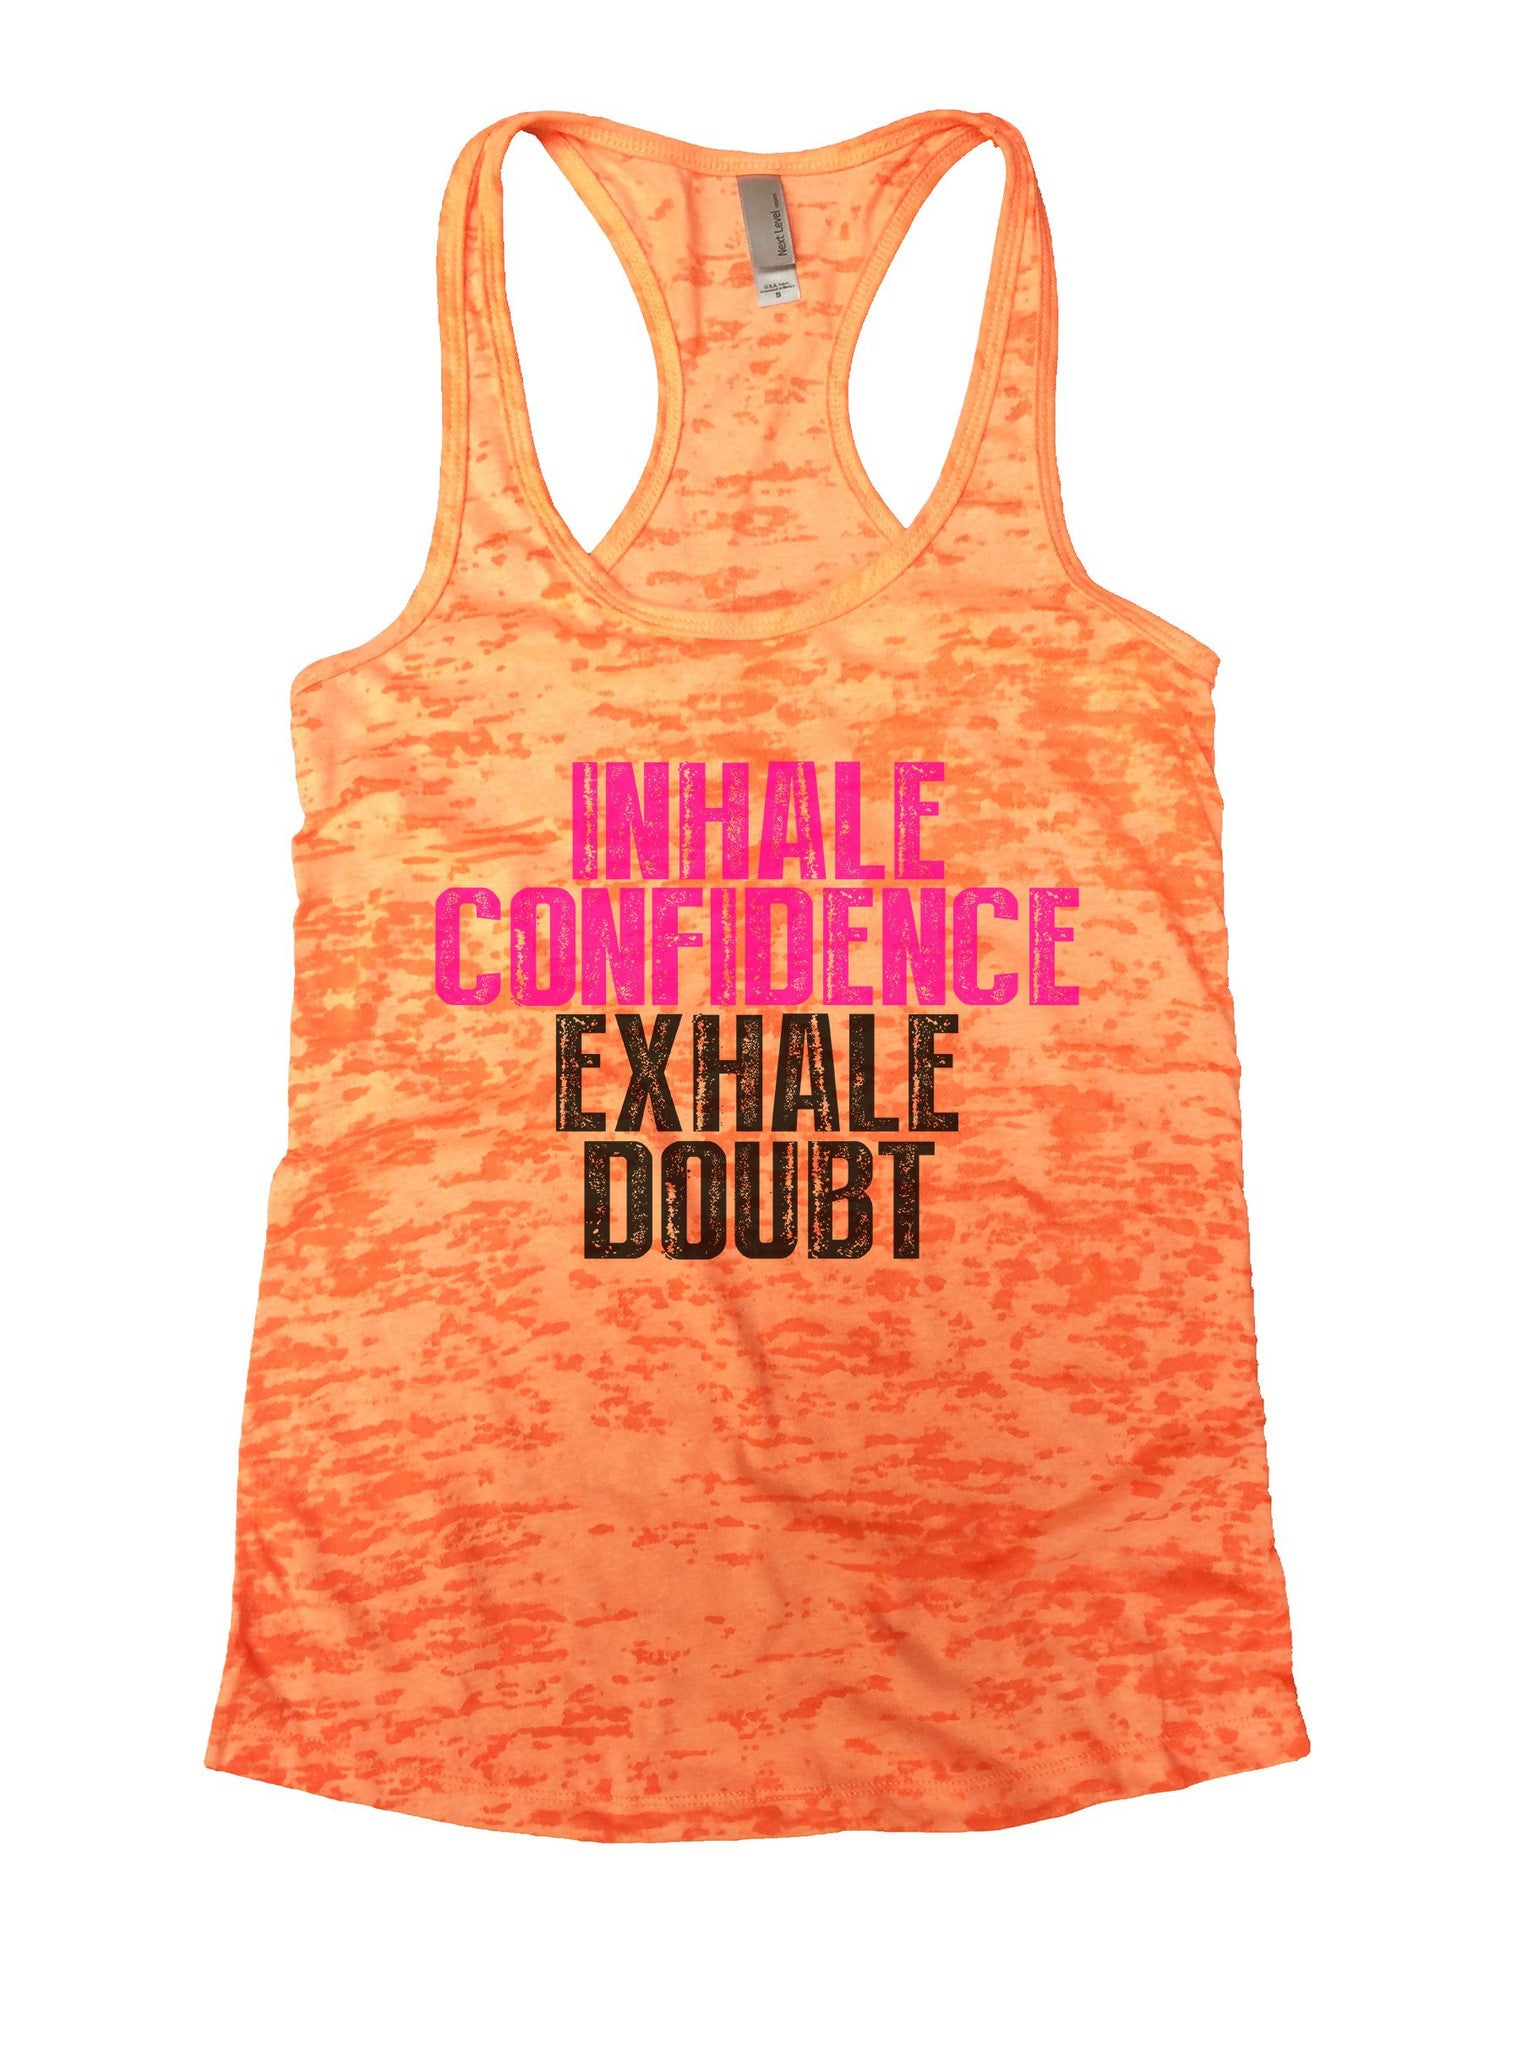 Inhale Confidence Exhale Doubt Burnout Tank Top By BurnoutTankTops.com - 1021 - Funny Shirts Tank Tops Burnouts and Triblends  - 3